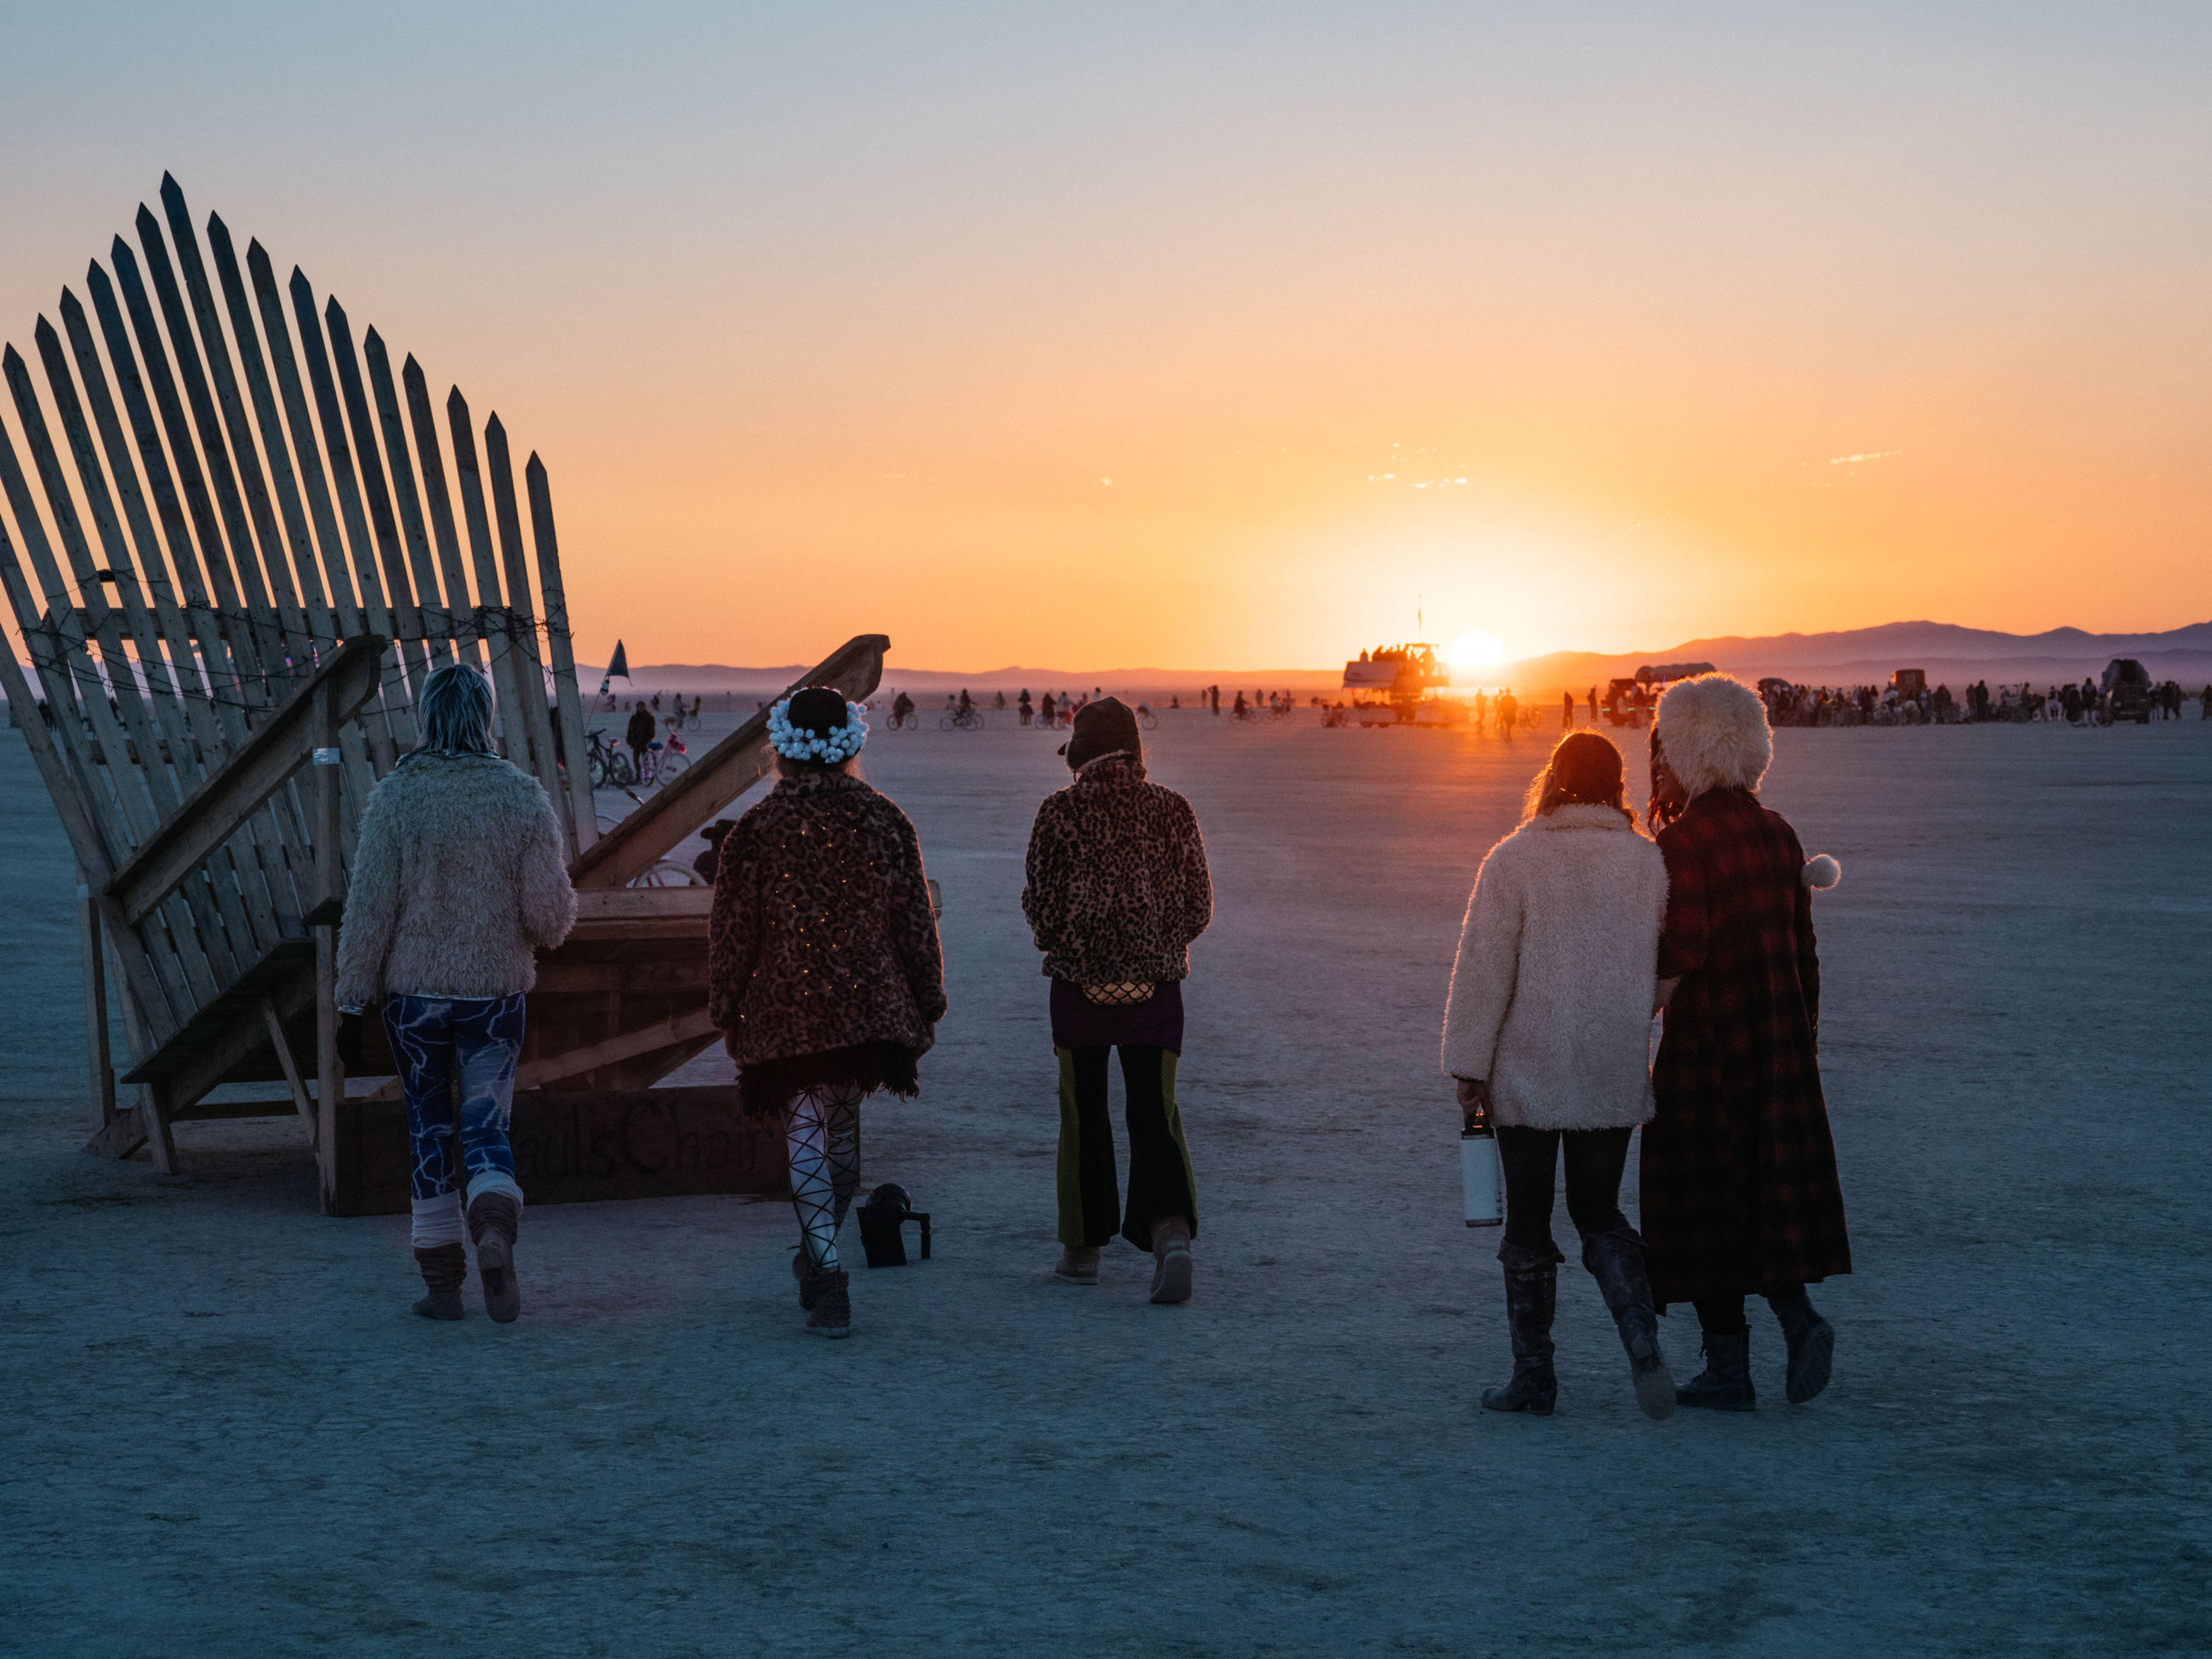 sunset, group of people, sky, real people, women, rear view, full length, adult, nature, sea, leisure activity, people, lifestyles, men, water, orange color, beach, medium group of people, crowd, group